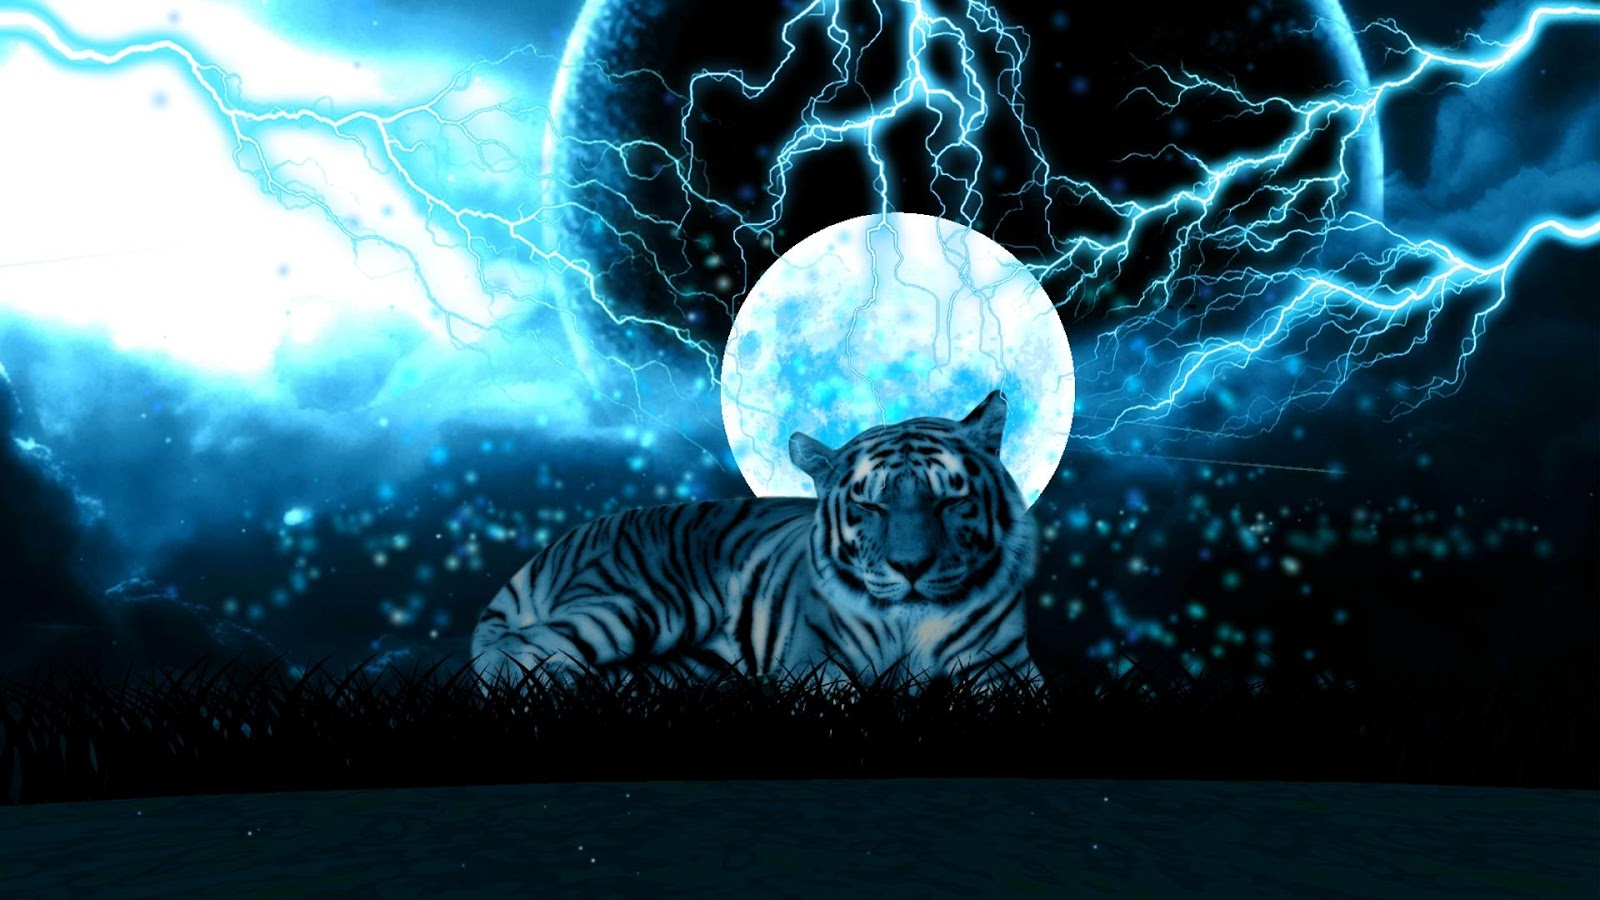 Amazing Tiger Wallpapers Best Of Hd For Desktop